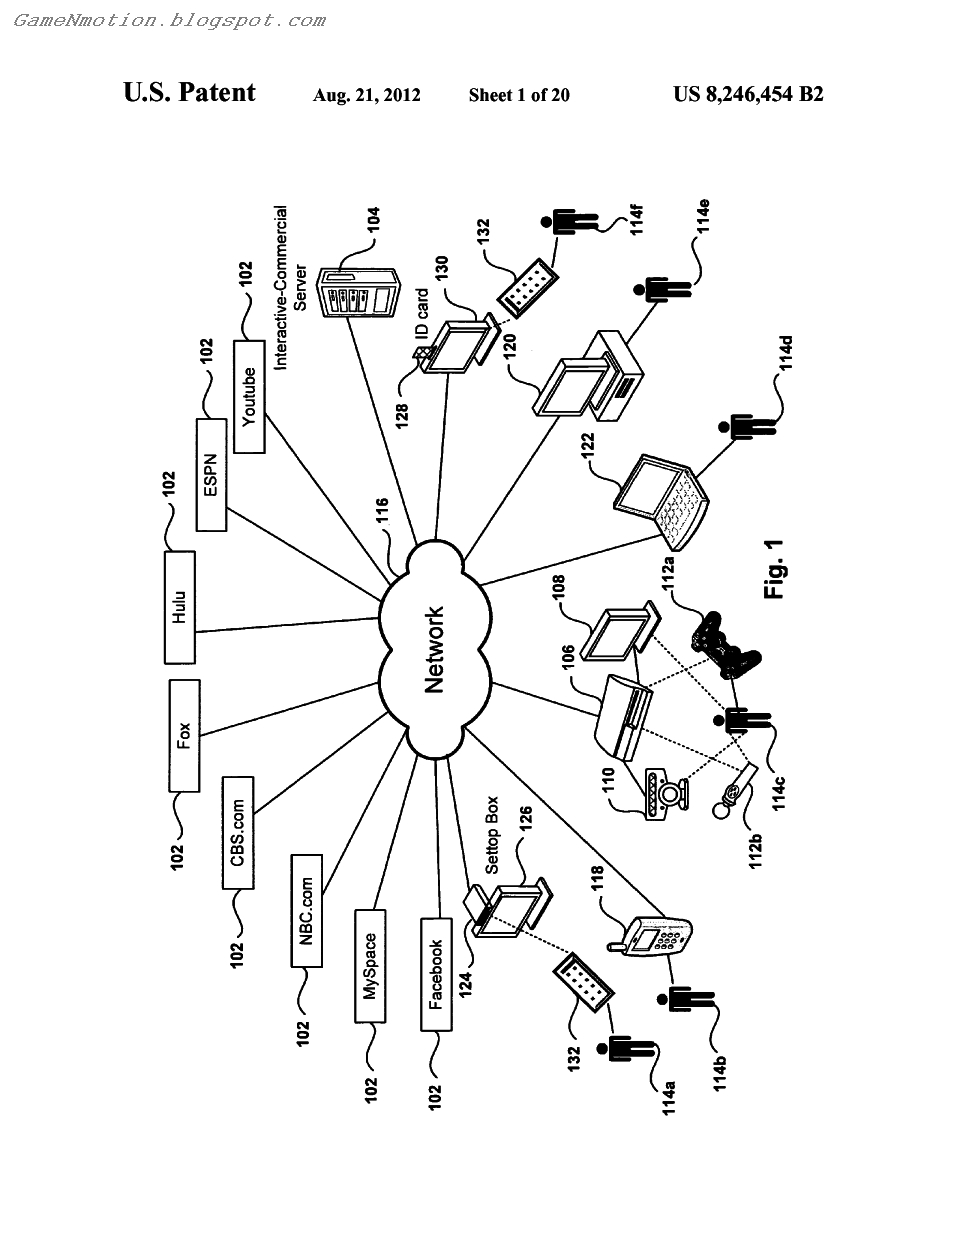 Sony Patent: convert TV commercials into interactive